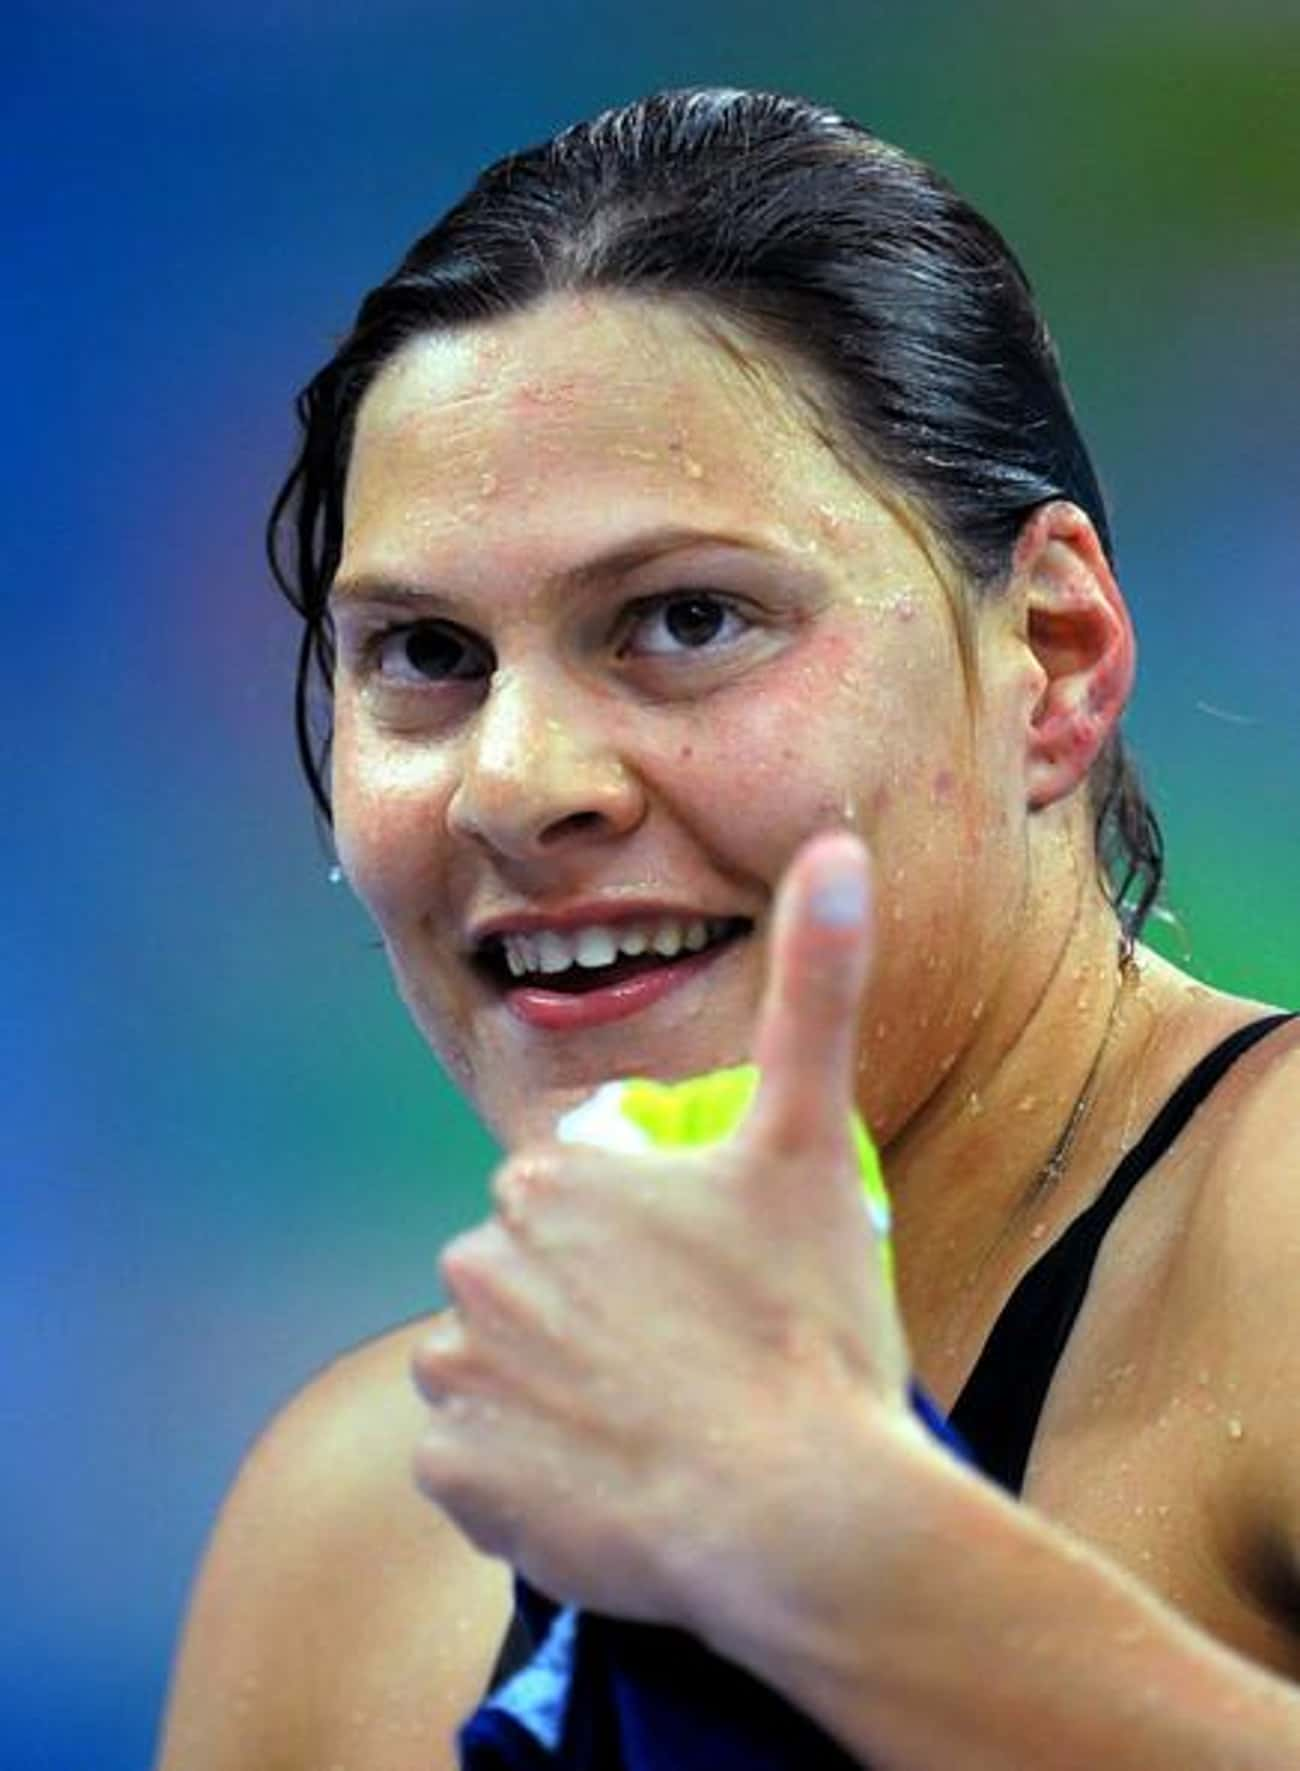 Natalie du Toit is listed (or ranked) 4 on the list 18 Famous Athletes Who Are Disabled